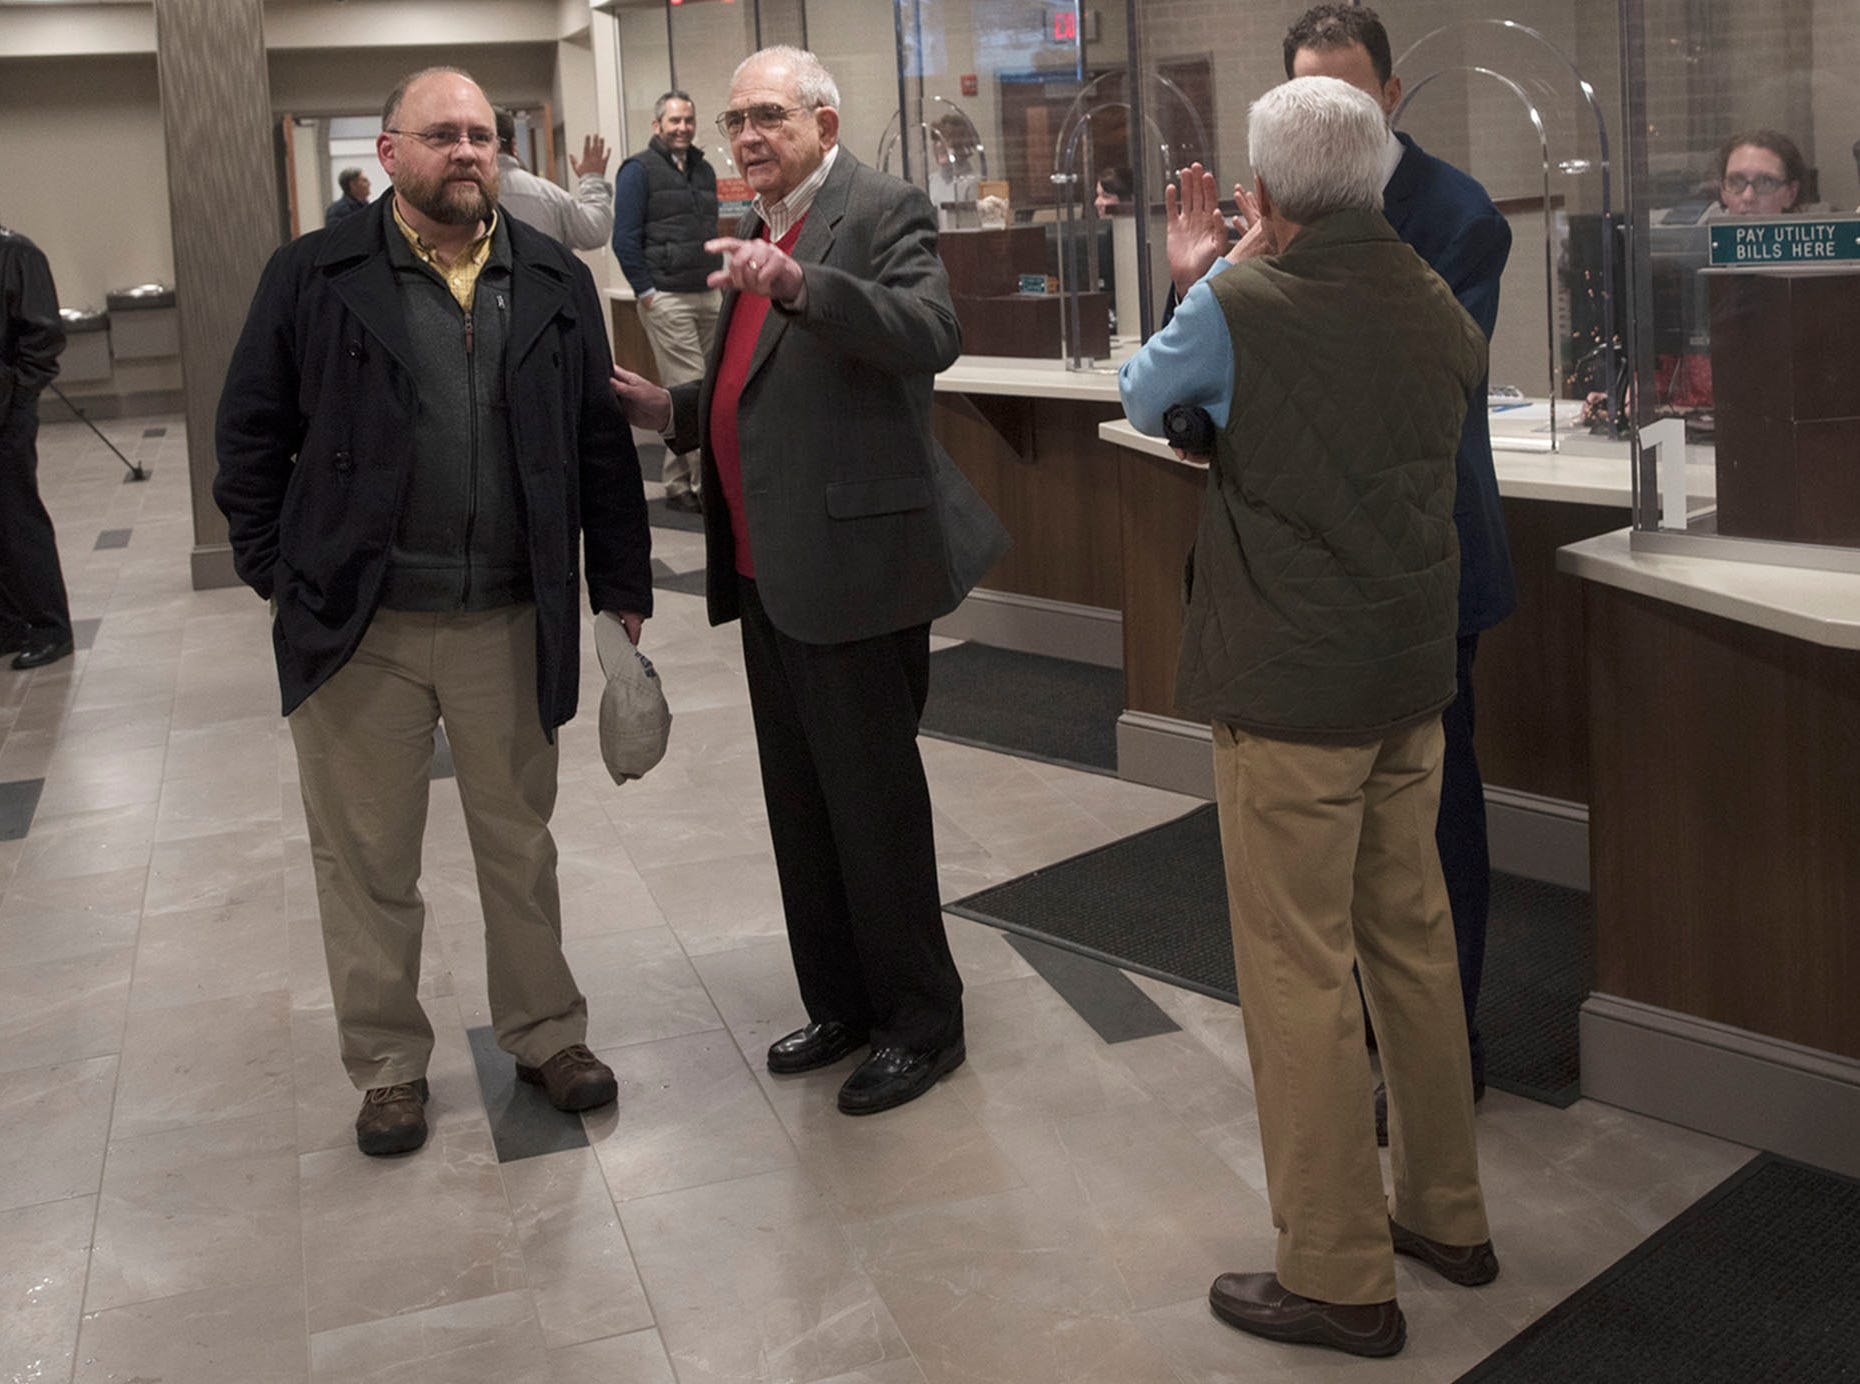 Former Chambersburg Boro manager Julio Lecuona, center, tours the new boro hall addition with others after a ribboncutting ceremony on Thursday, December 20, 2018.